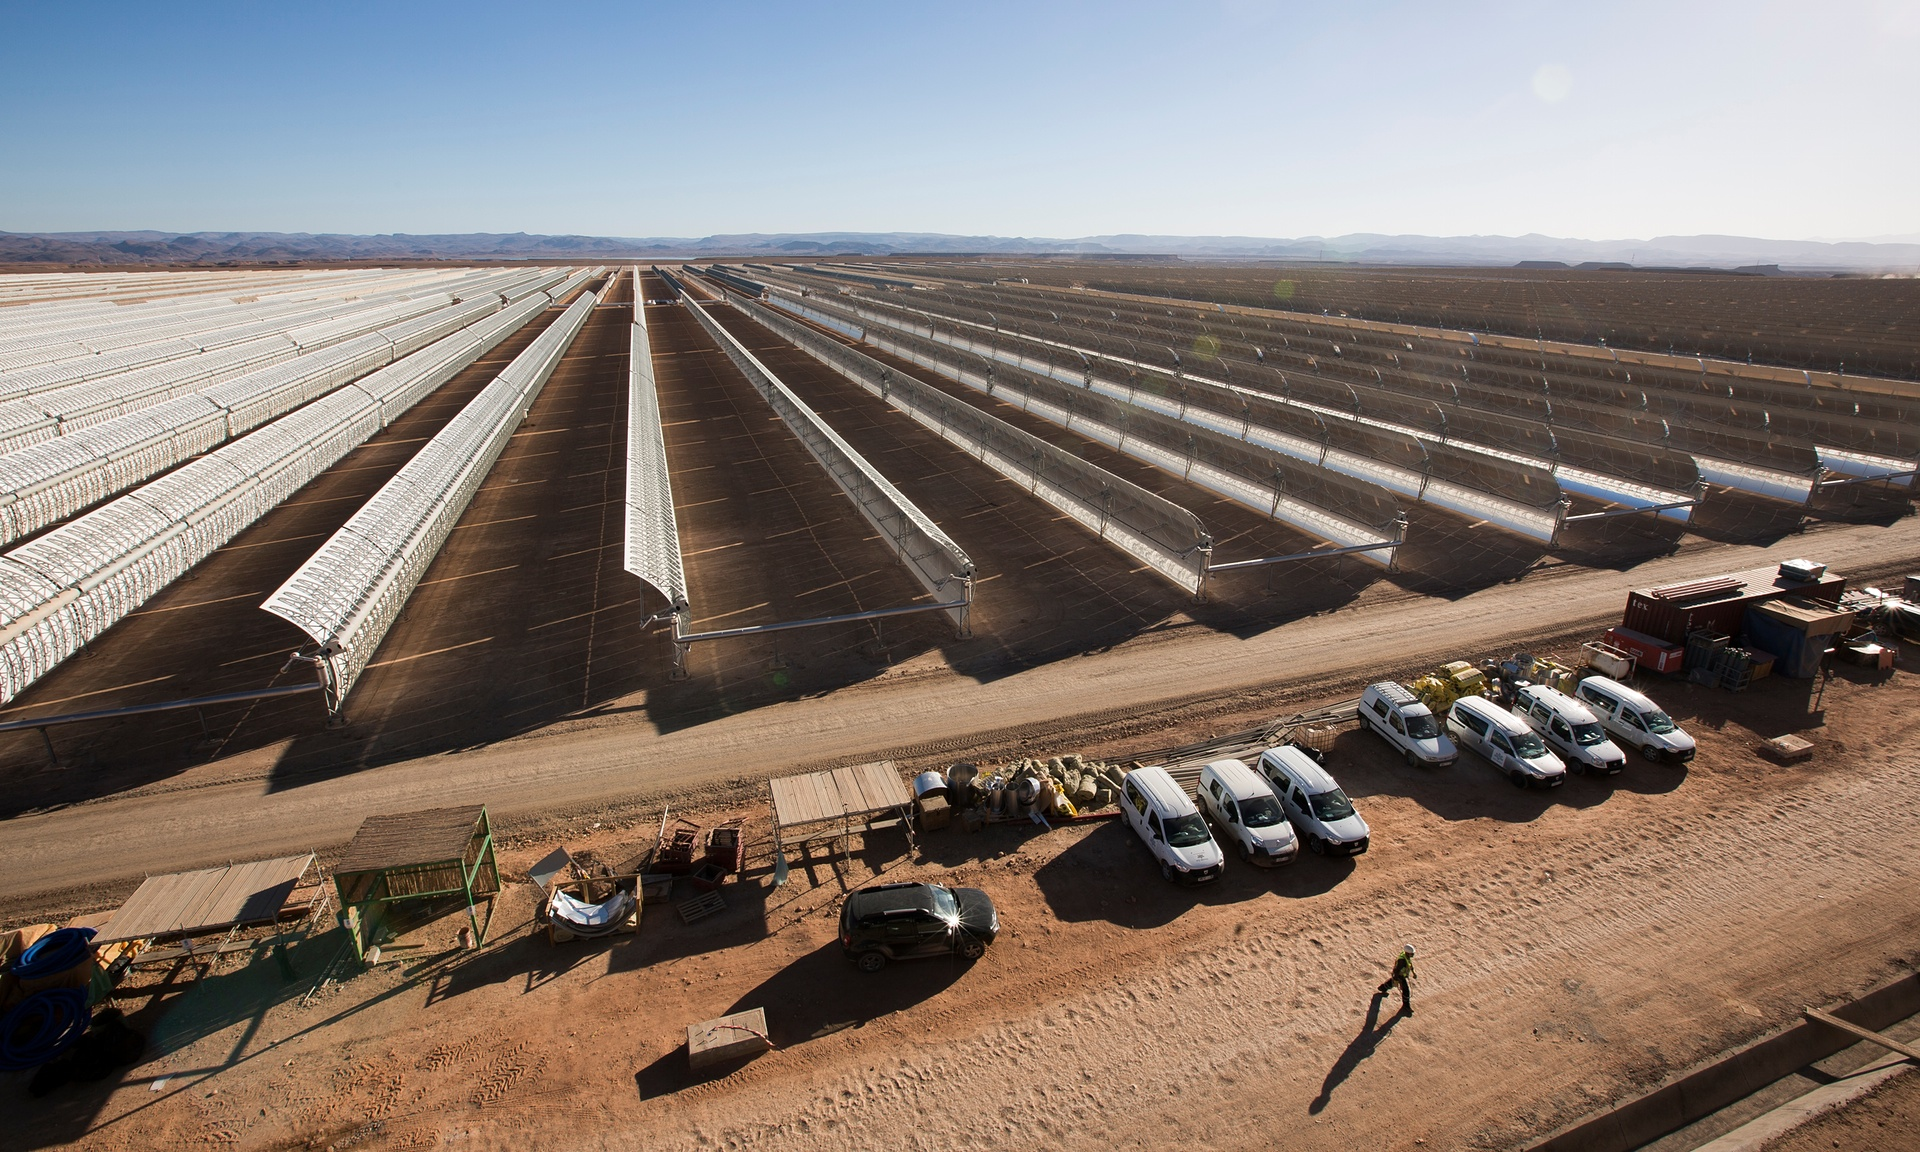 Morocco to switch on first phase of world's largest solar plant